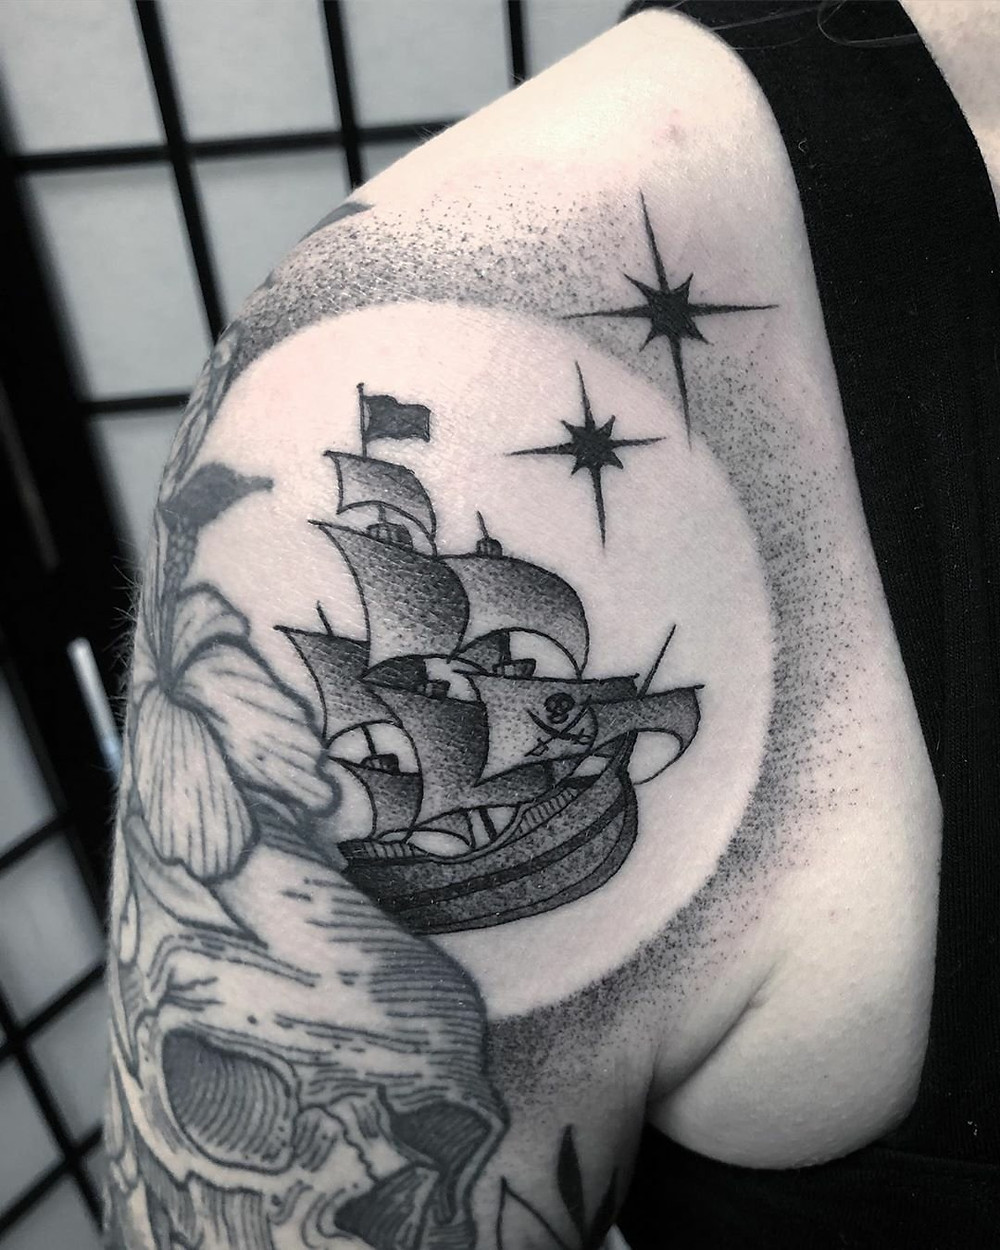 Peter Pan pirate ship tattoo, blackwork by Jade Quail of Paper Crane Studio.